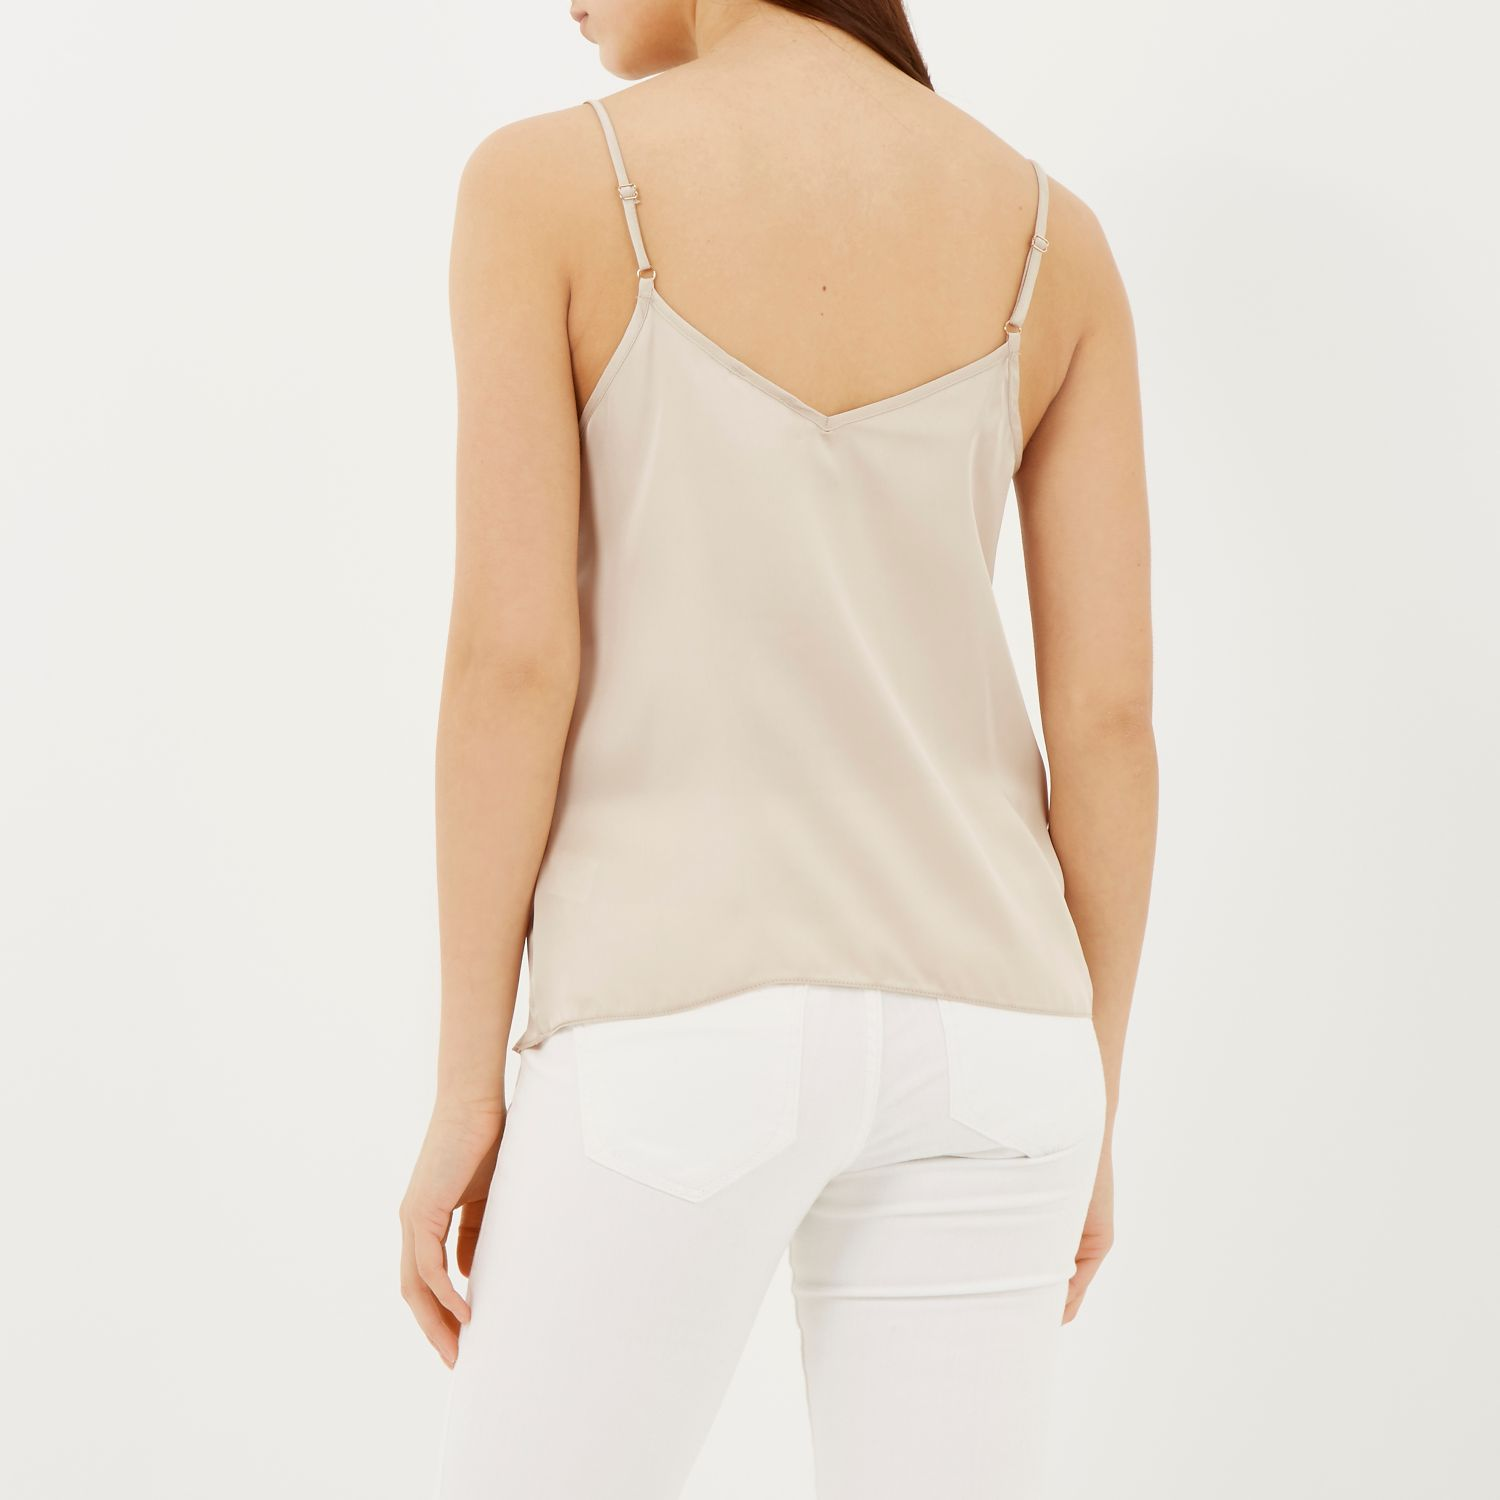 Beige strappy cami top